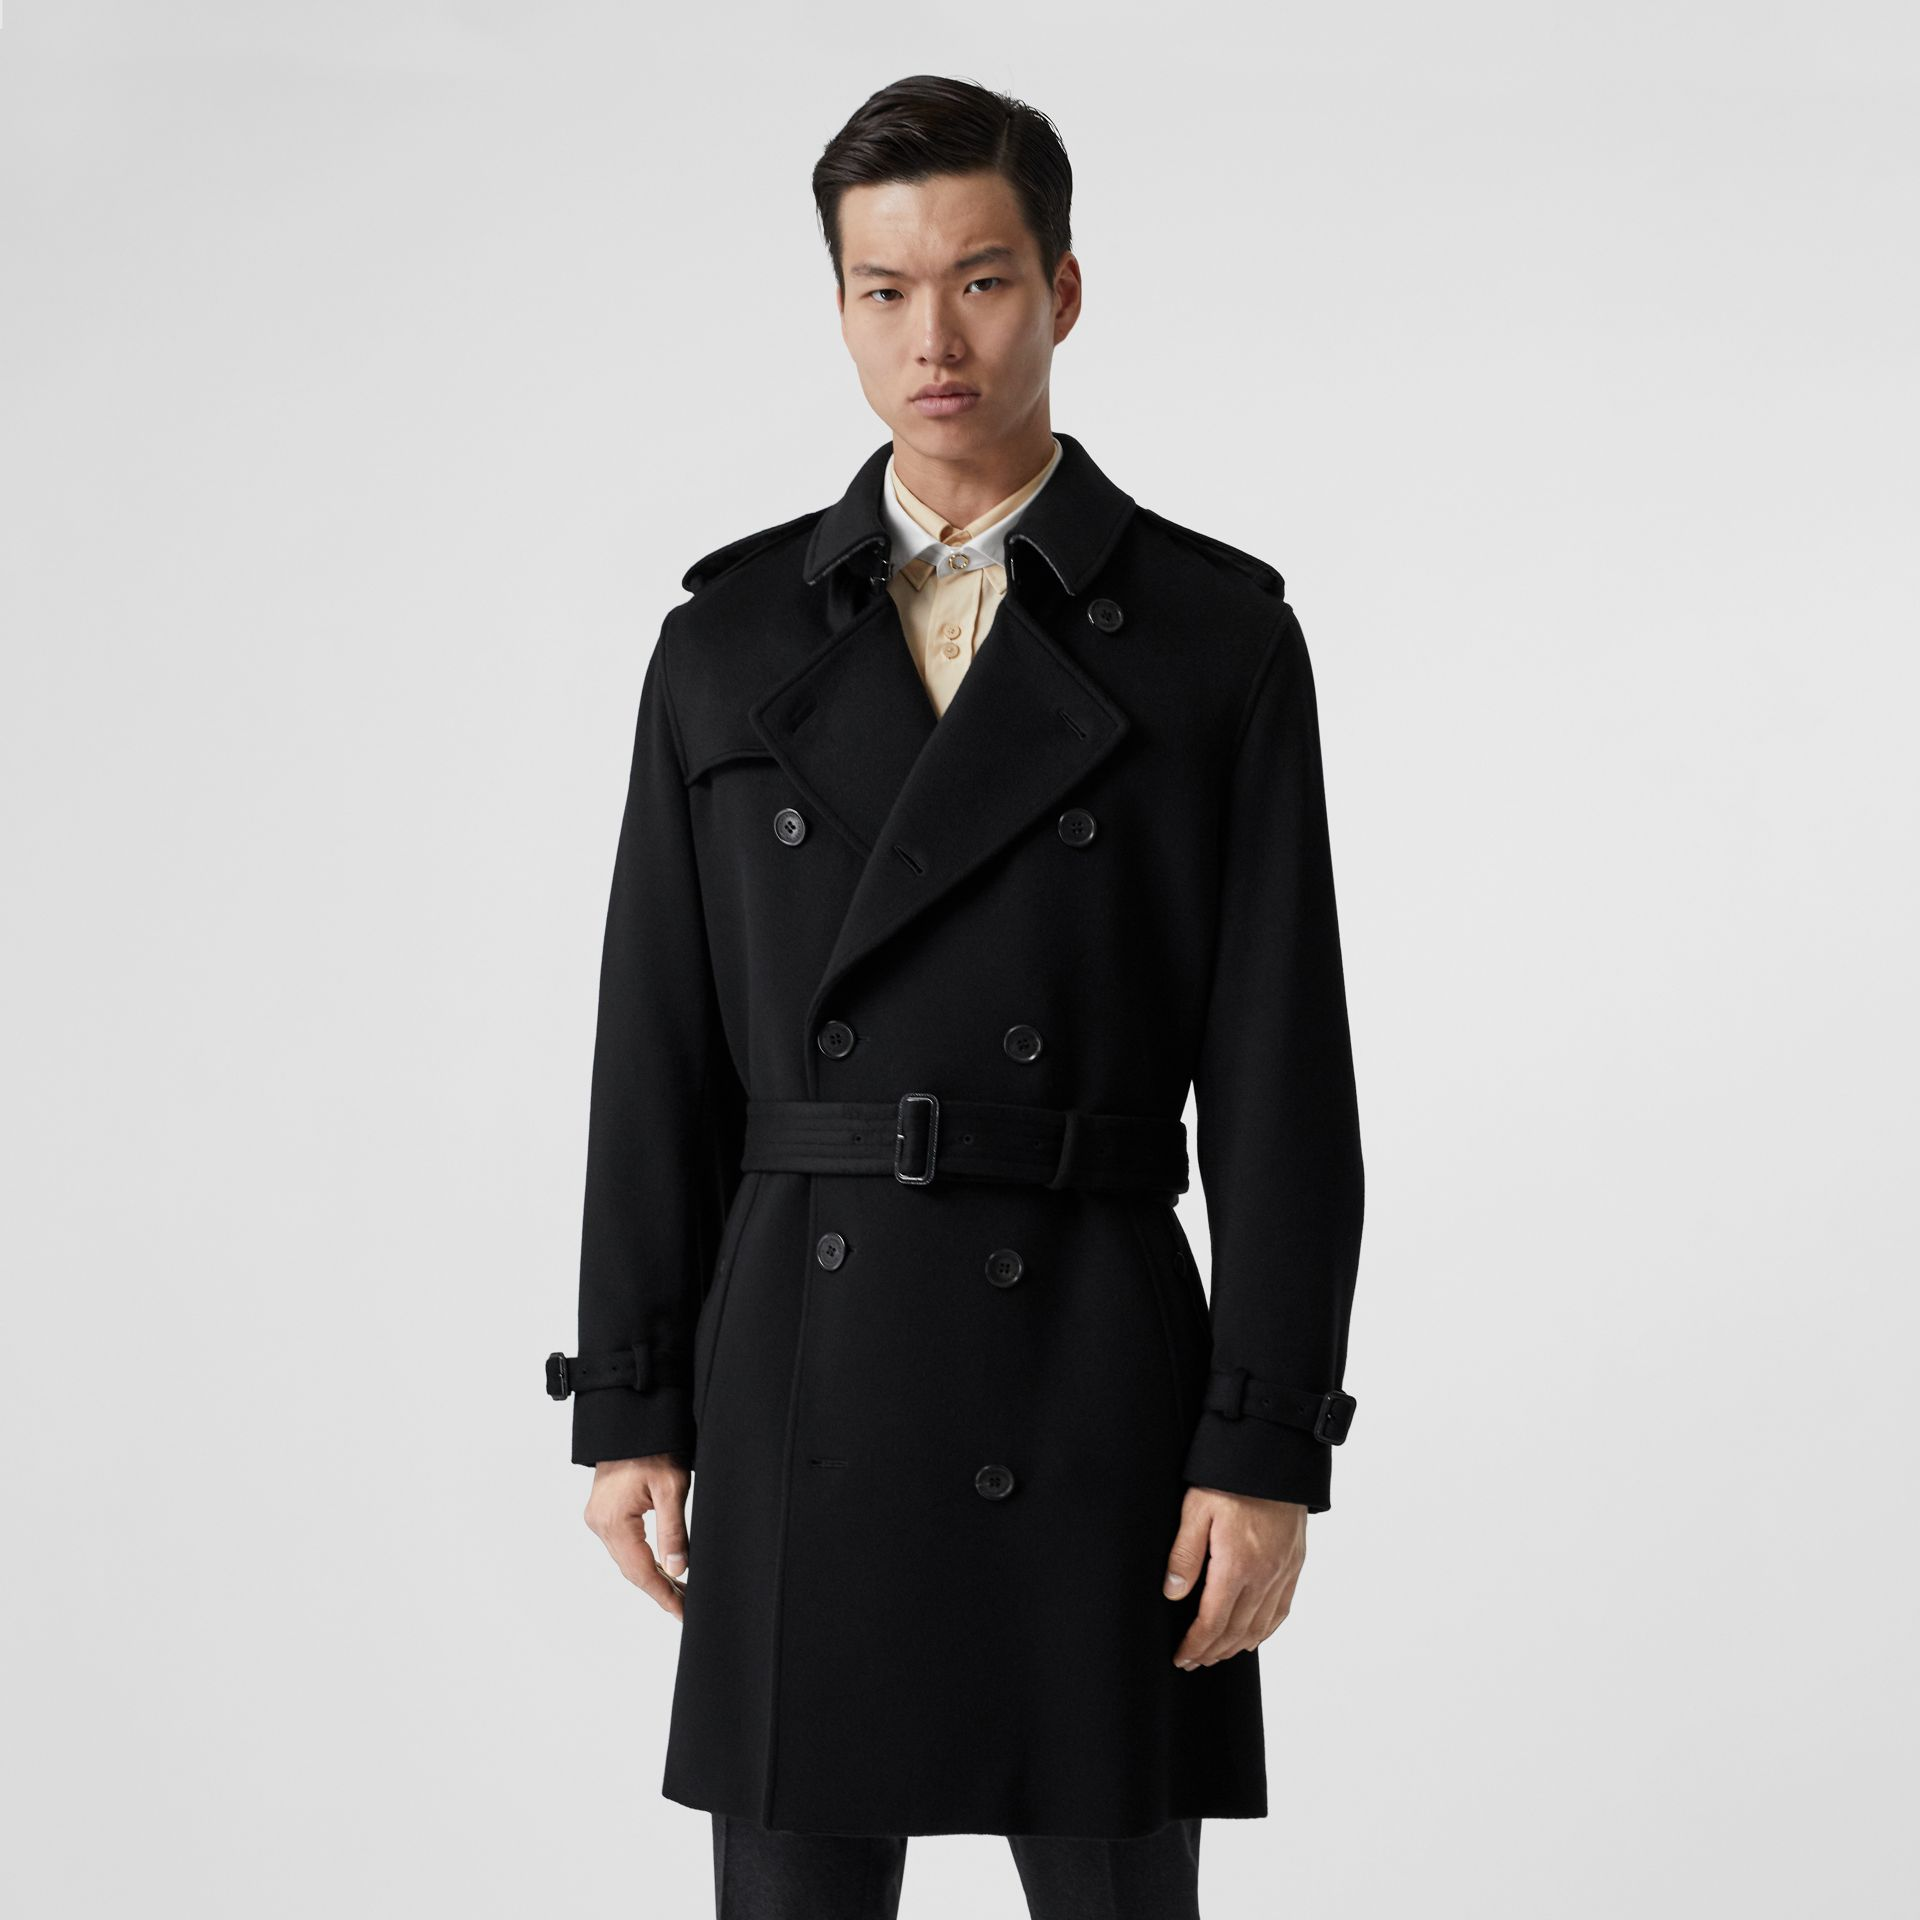 Cashmere Trench Coat in Black - Men | Burberry United Kingdom - gallery image 6